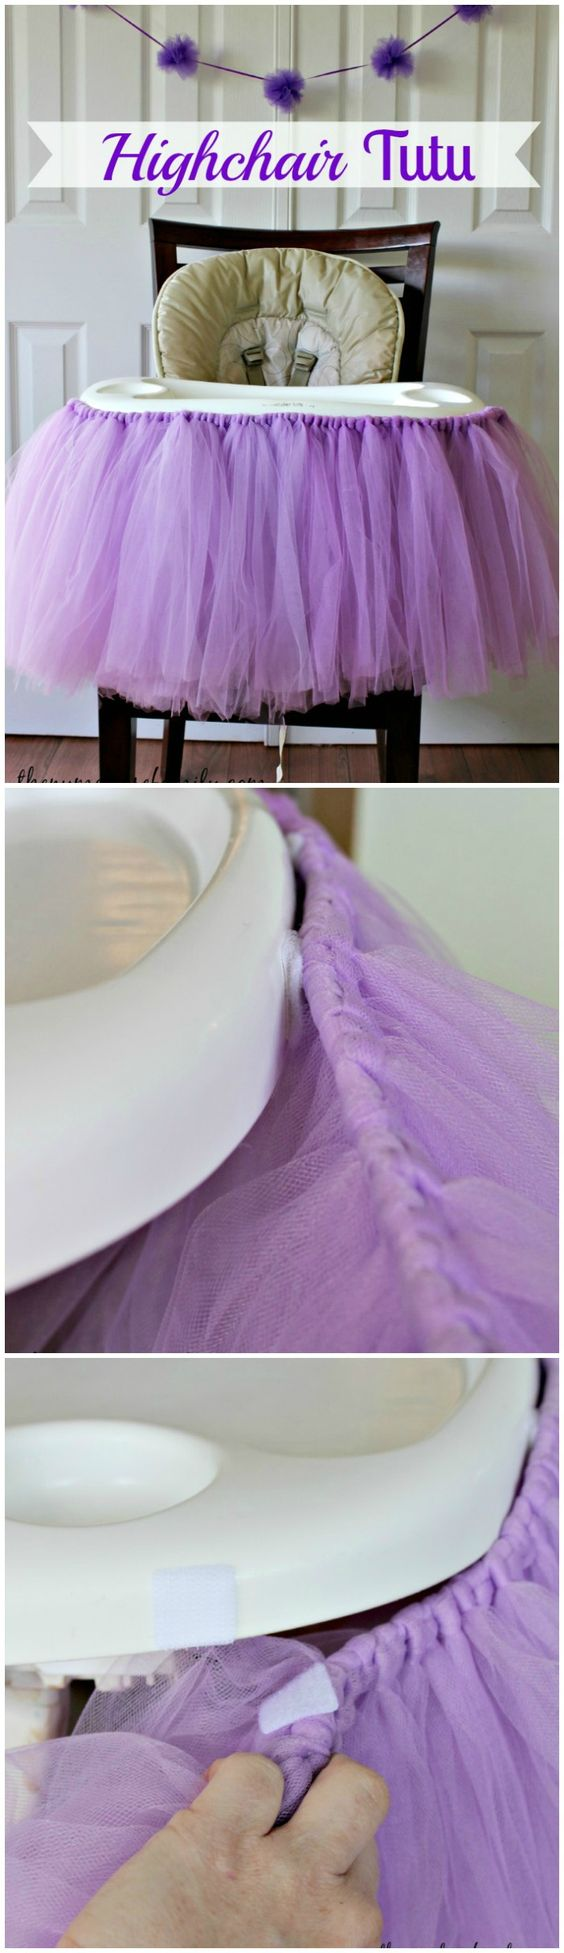 No Sew Highchair Tutu perfect for 1st Birthday parties! #firstbirthday: